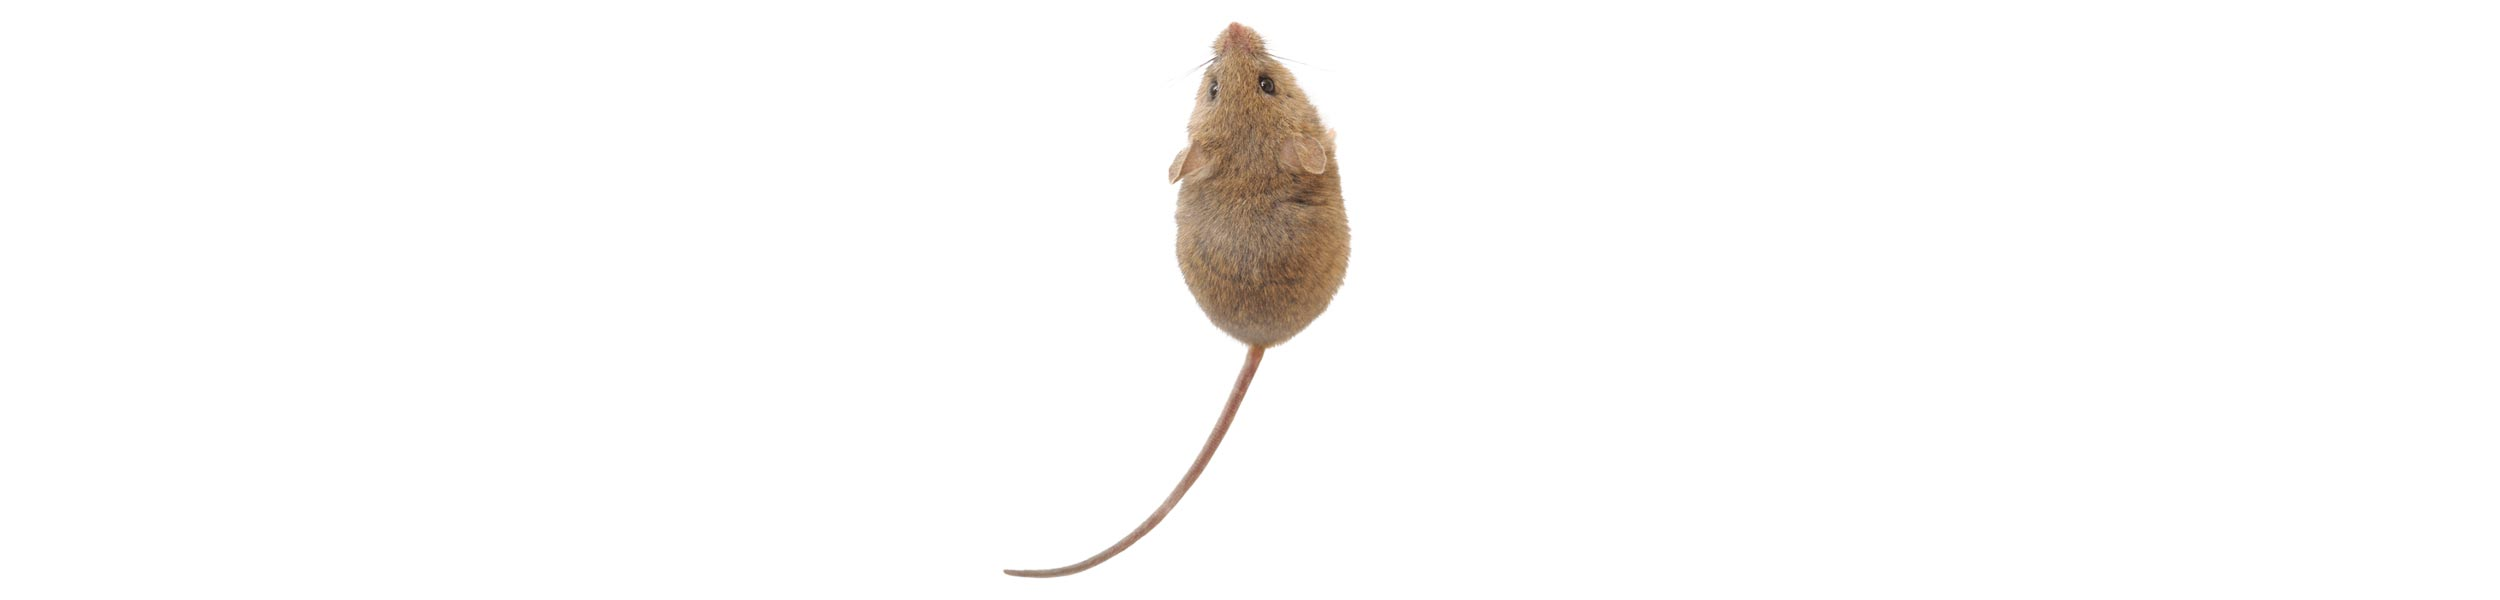 OPC-Pest-Control-Rodents-Mouse-Rat-Header